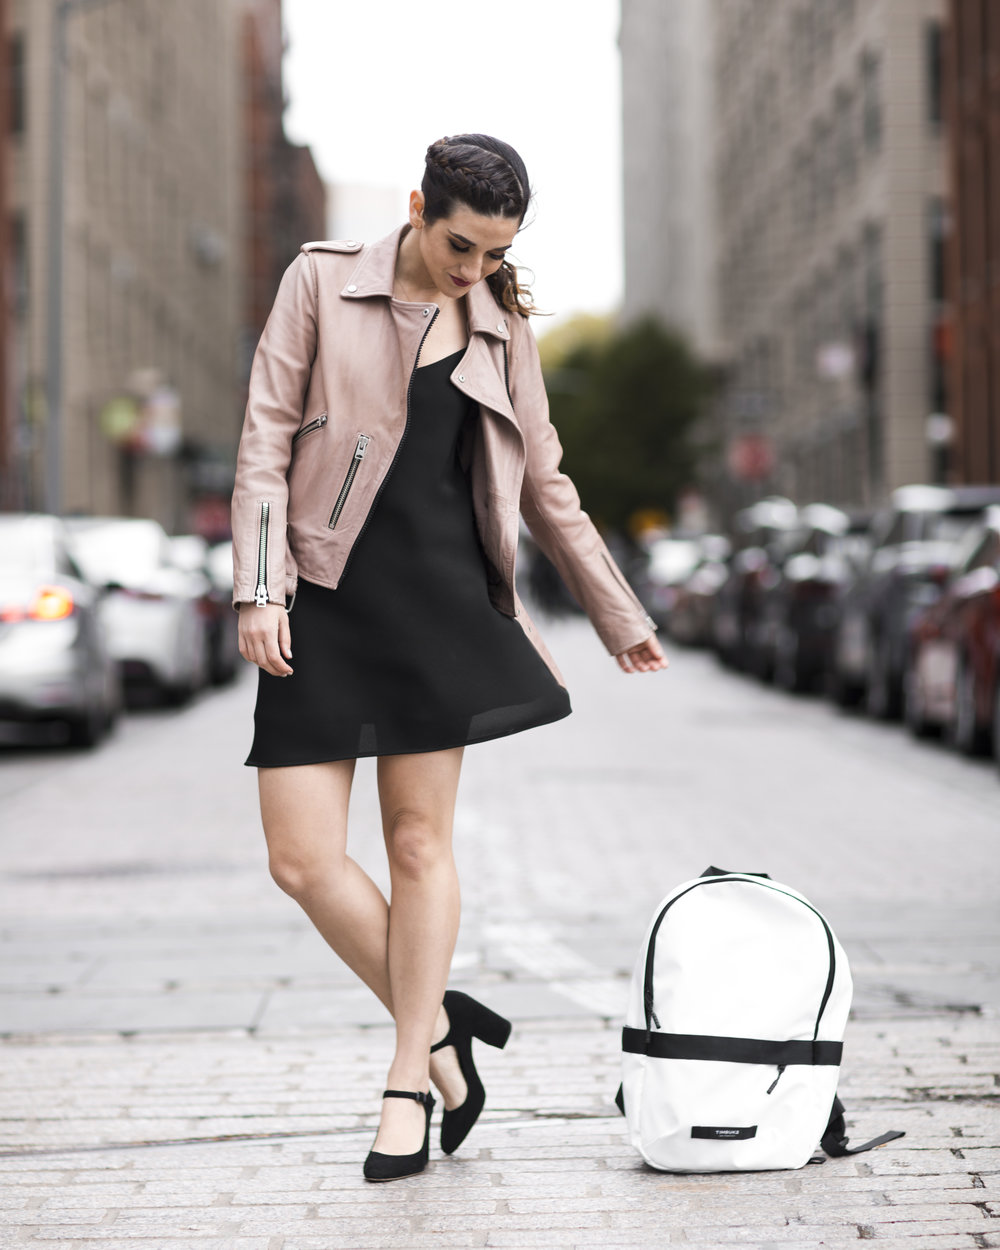 The Perfect Travel Backpack Timbuk2 Louboutins & Love Fashion Blog Esther Santer NYC Street Style Blogger Outfit OOTD Trendy All Saints Blush Pink Leather Backpack Black Pumps Shoes Heels Slip Dress Hair Ponytail Braids Women Girls Inspo Vacation Bag.jpg